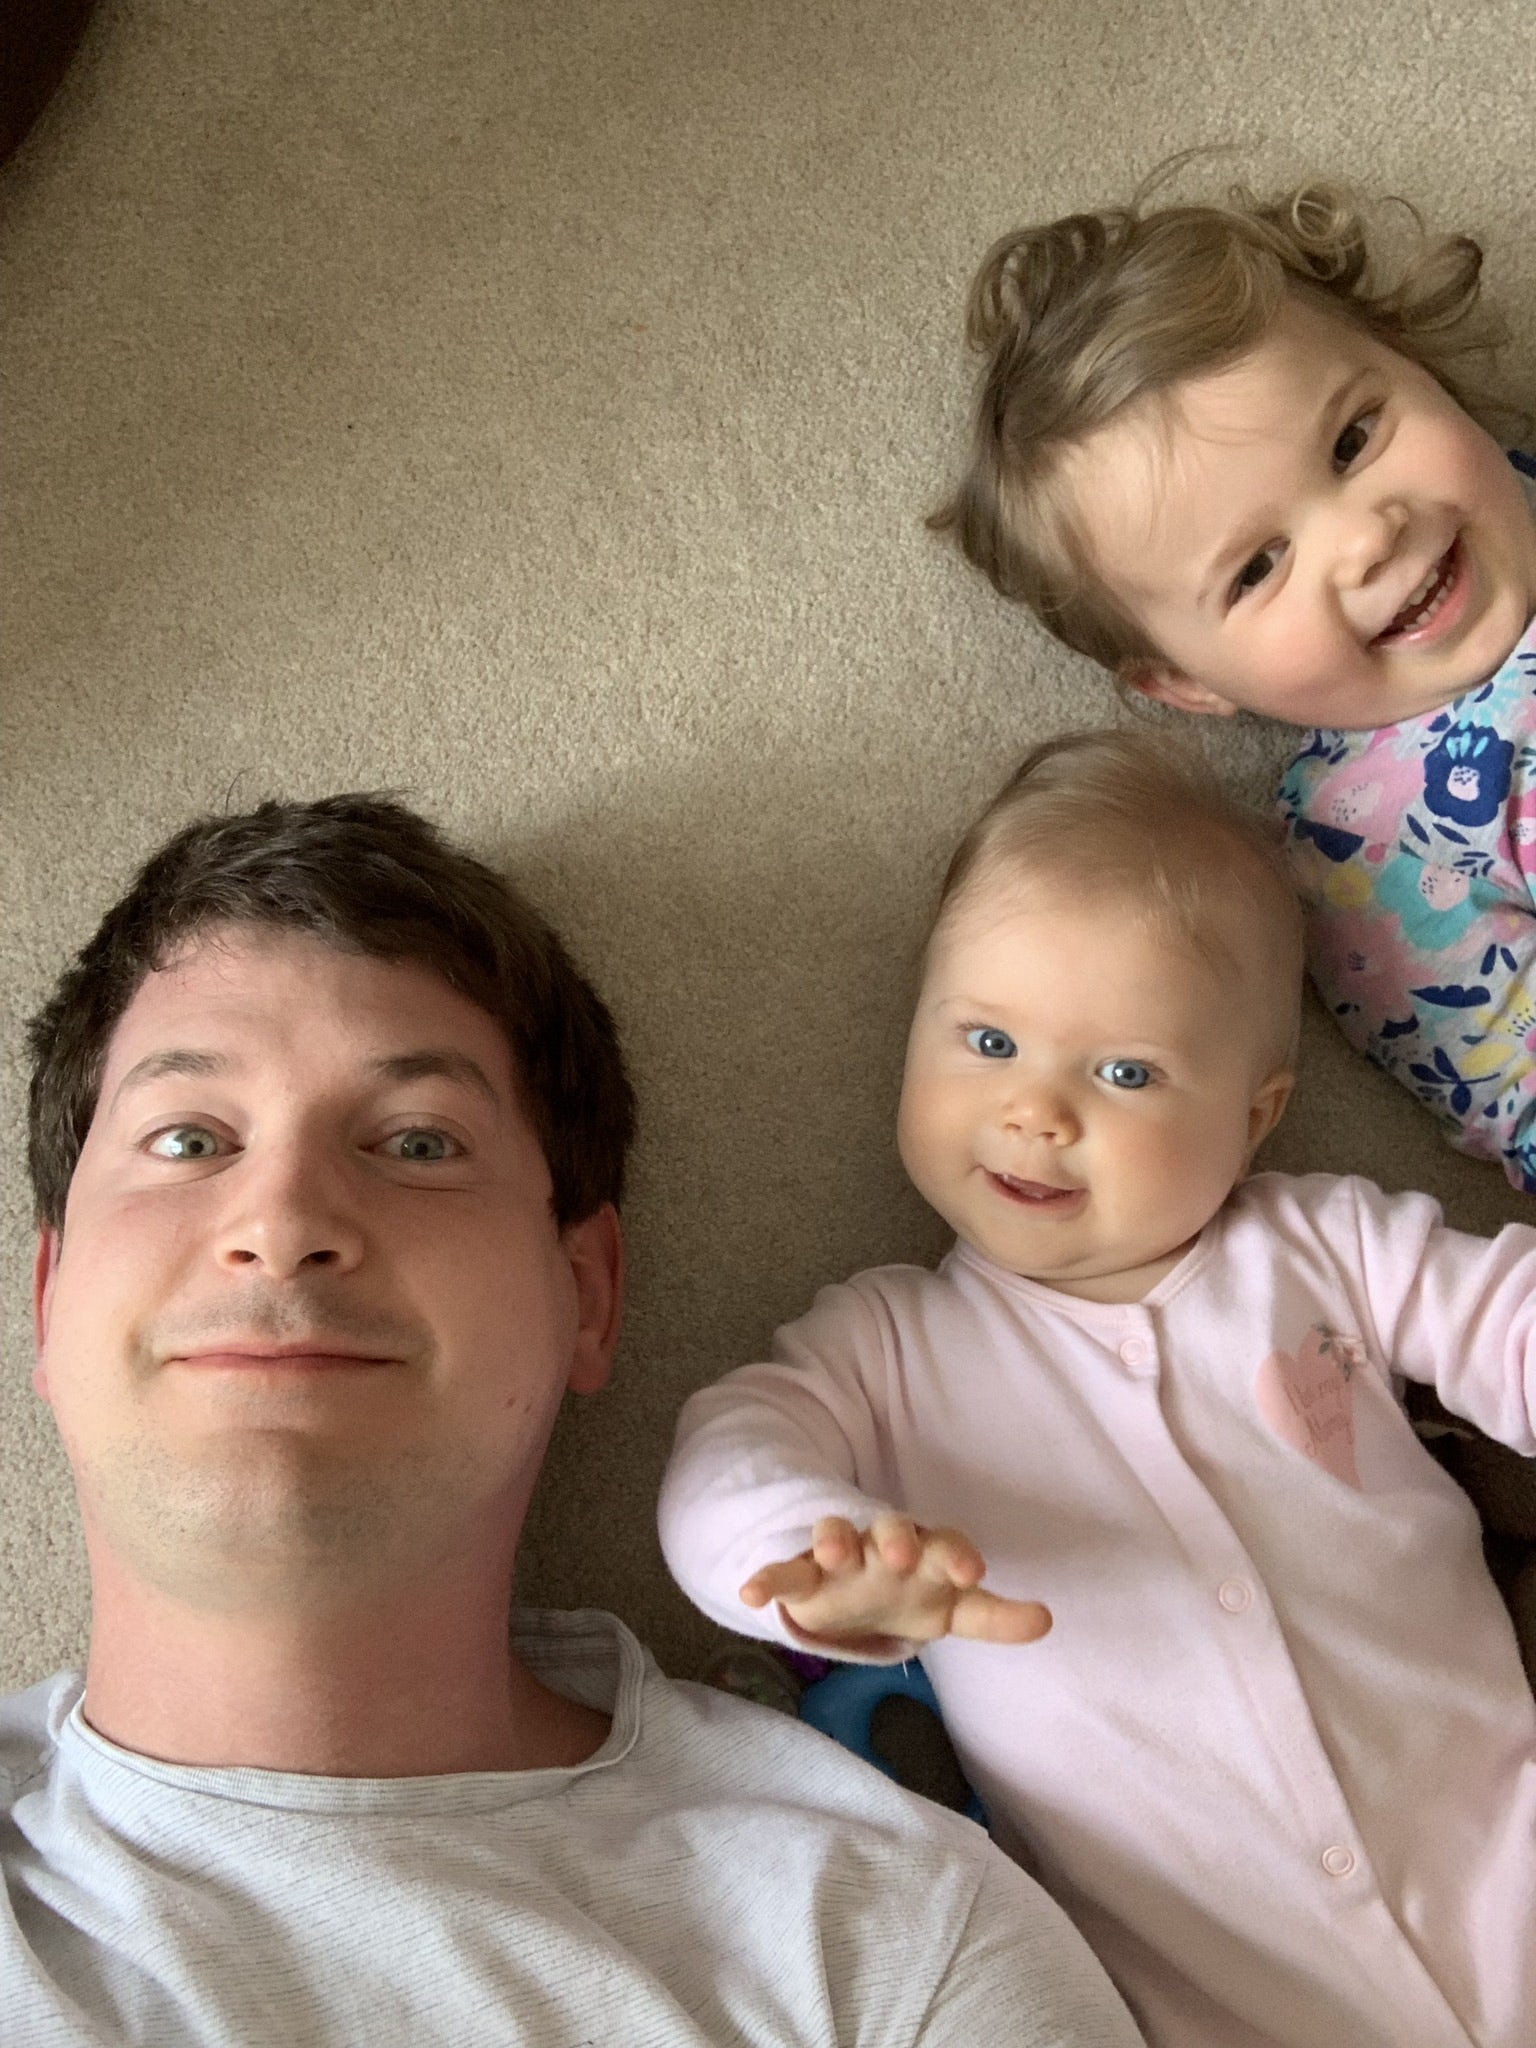 Me and my two kids, lying on the floor, looking up at the camera.